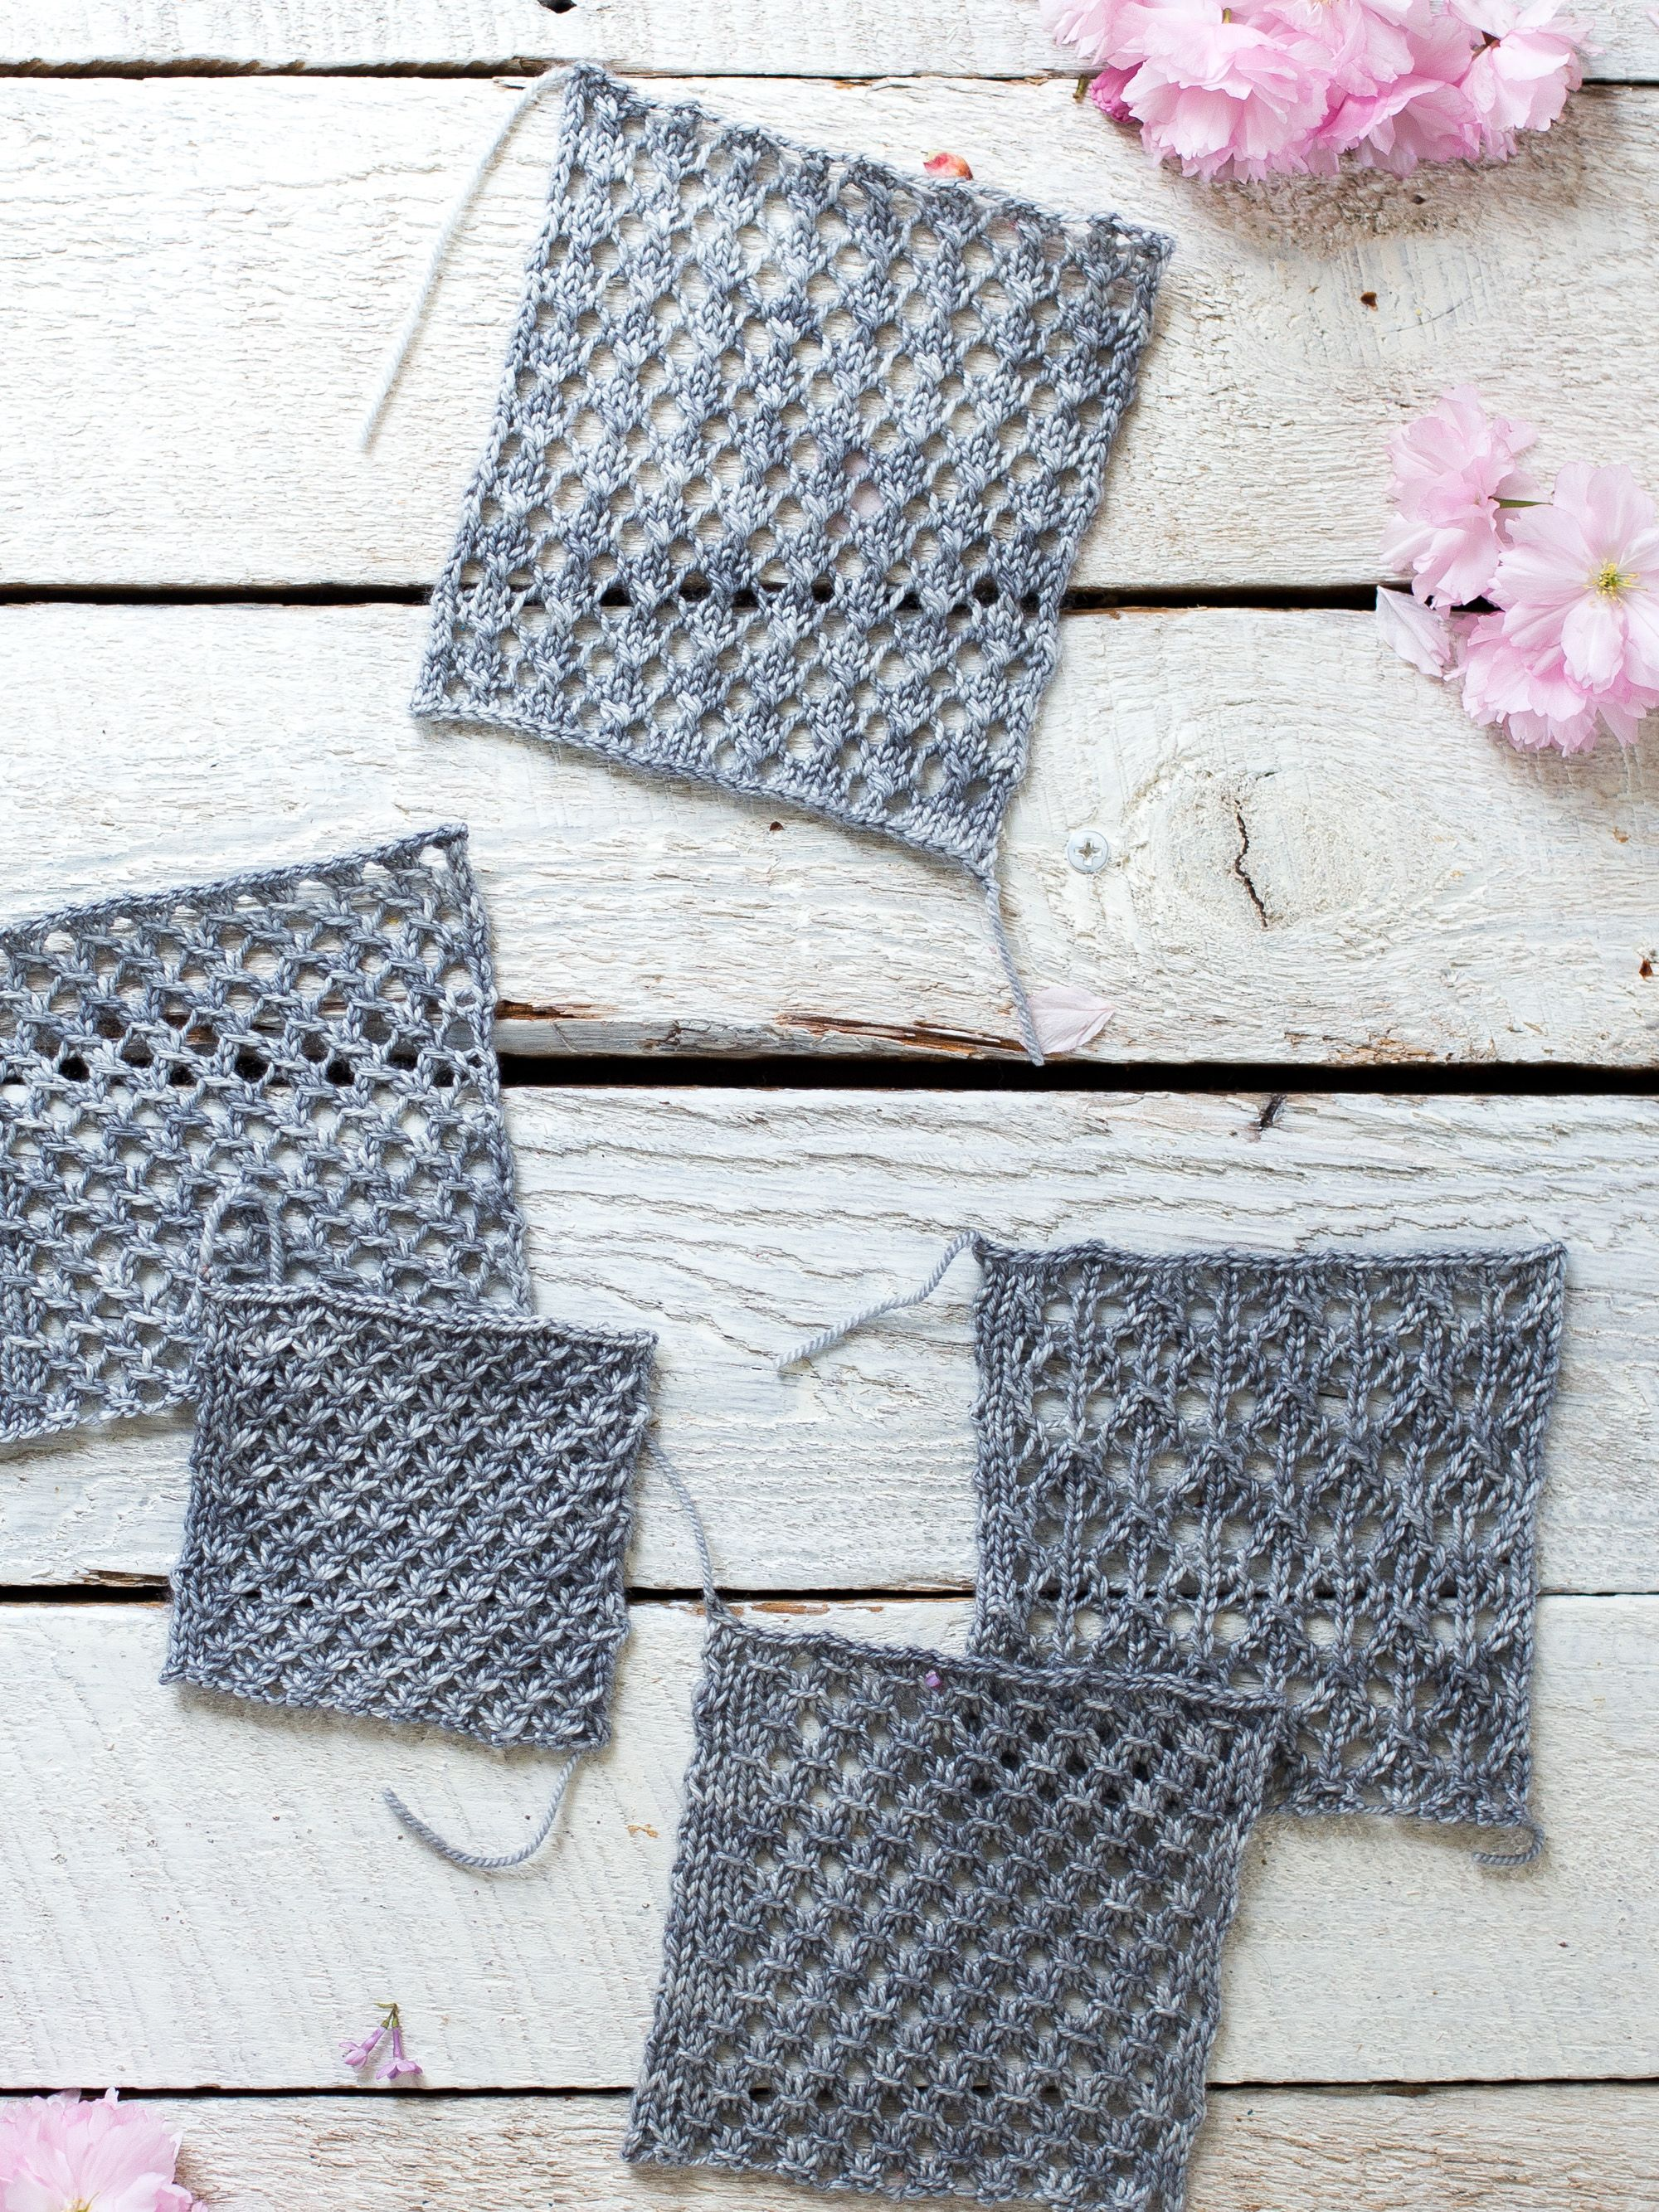 How To Make An Easy Lace Knit Shawl Pattern | Knit lace, Lace ...